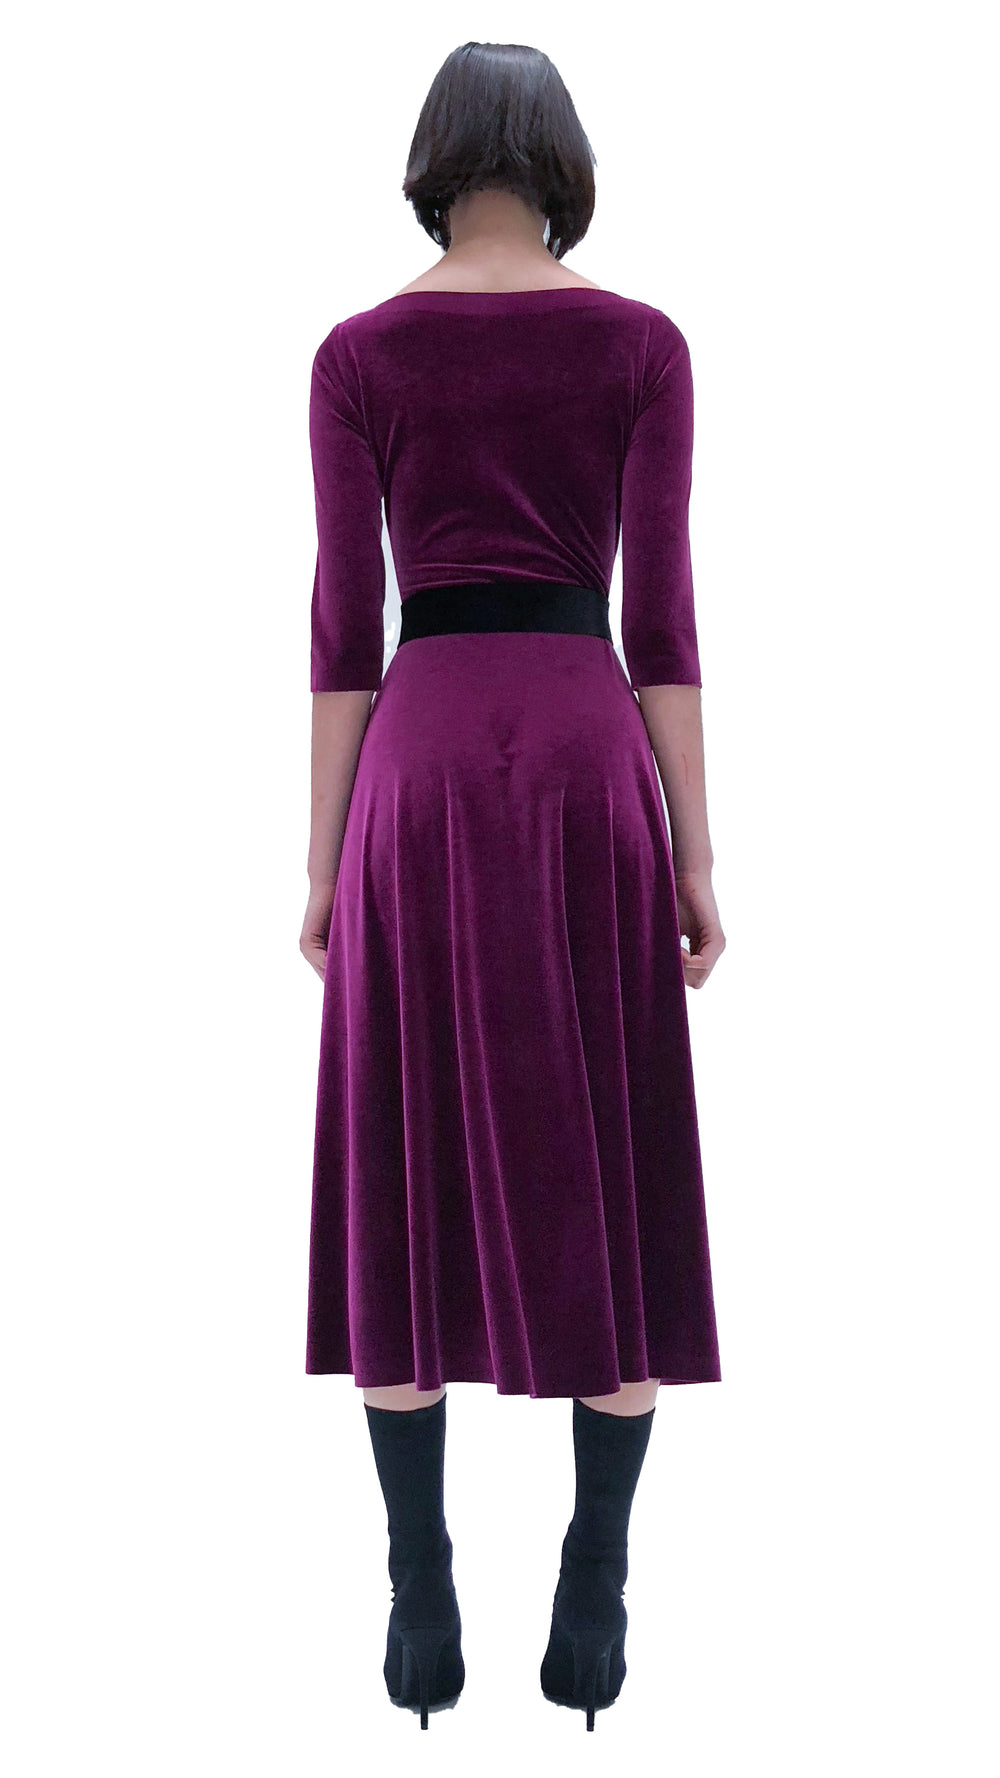 LONG SLEEVE REVERSIBLE SCOOP NECK FLARED DRESS